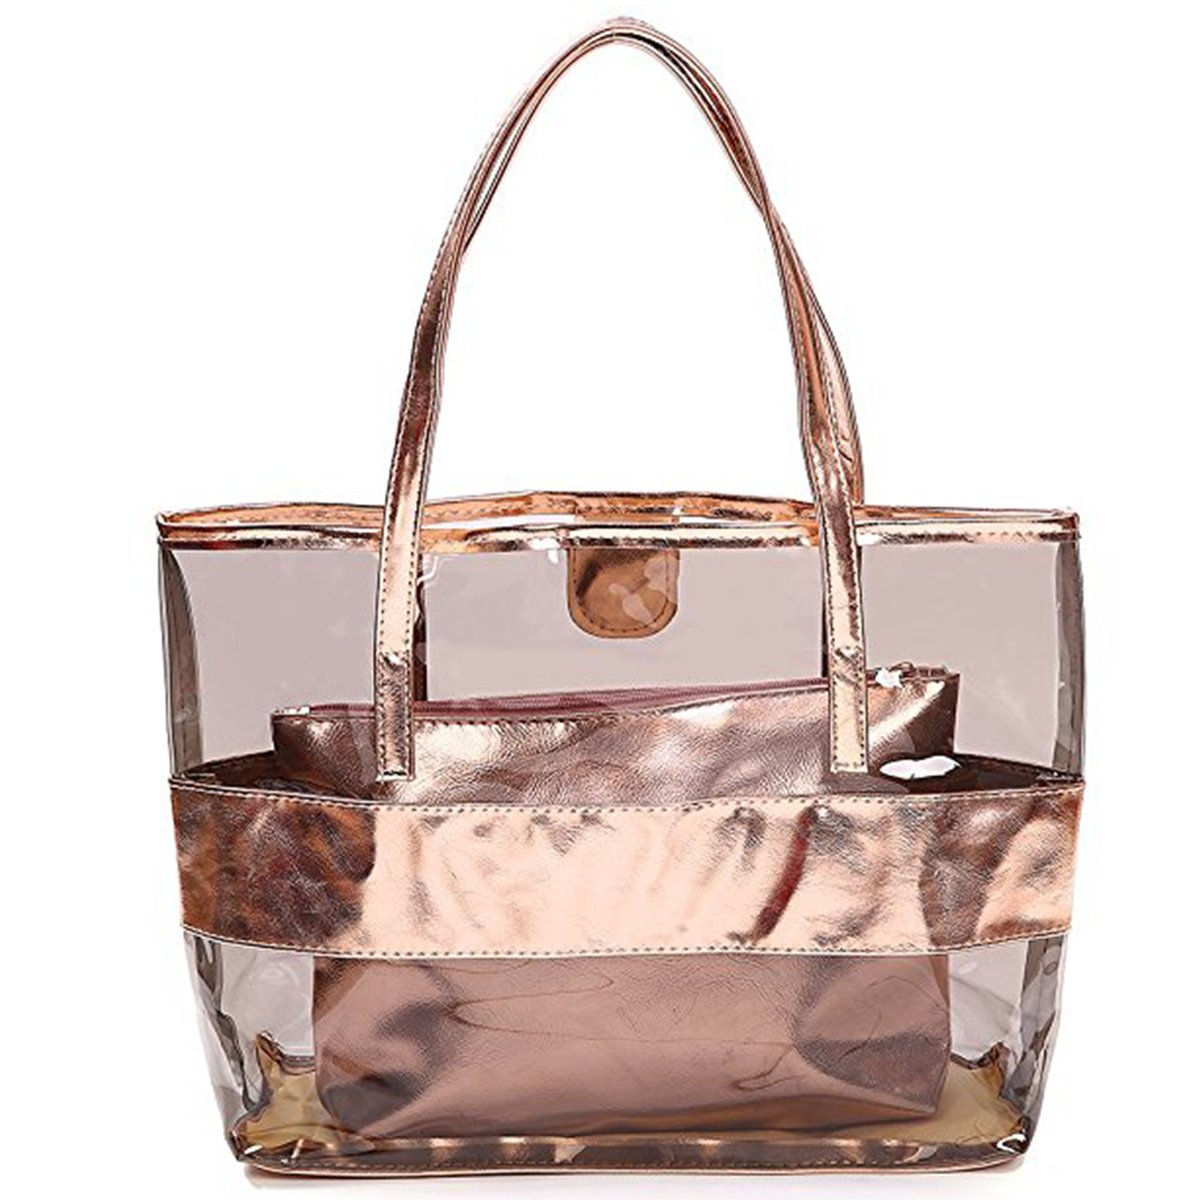 Starbailey Clear PVC Bag Gold Color Beach Bag – Toy Tote Bag – Large Lightweight Market, Grocery & Picnic Tote Oversized Pockets,2pcs Sets Travel, Best Fit Your Cosmetic, I-Phone, Champagne Color